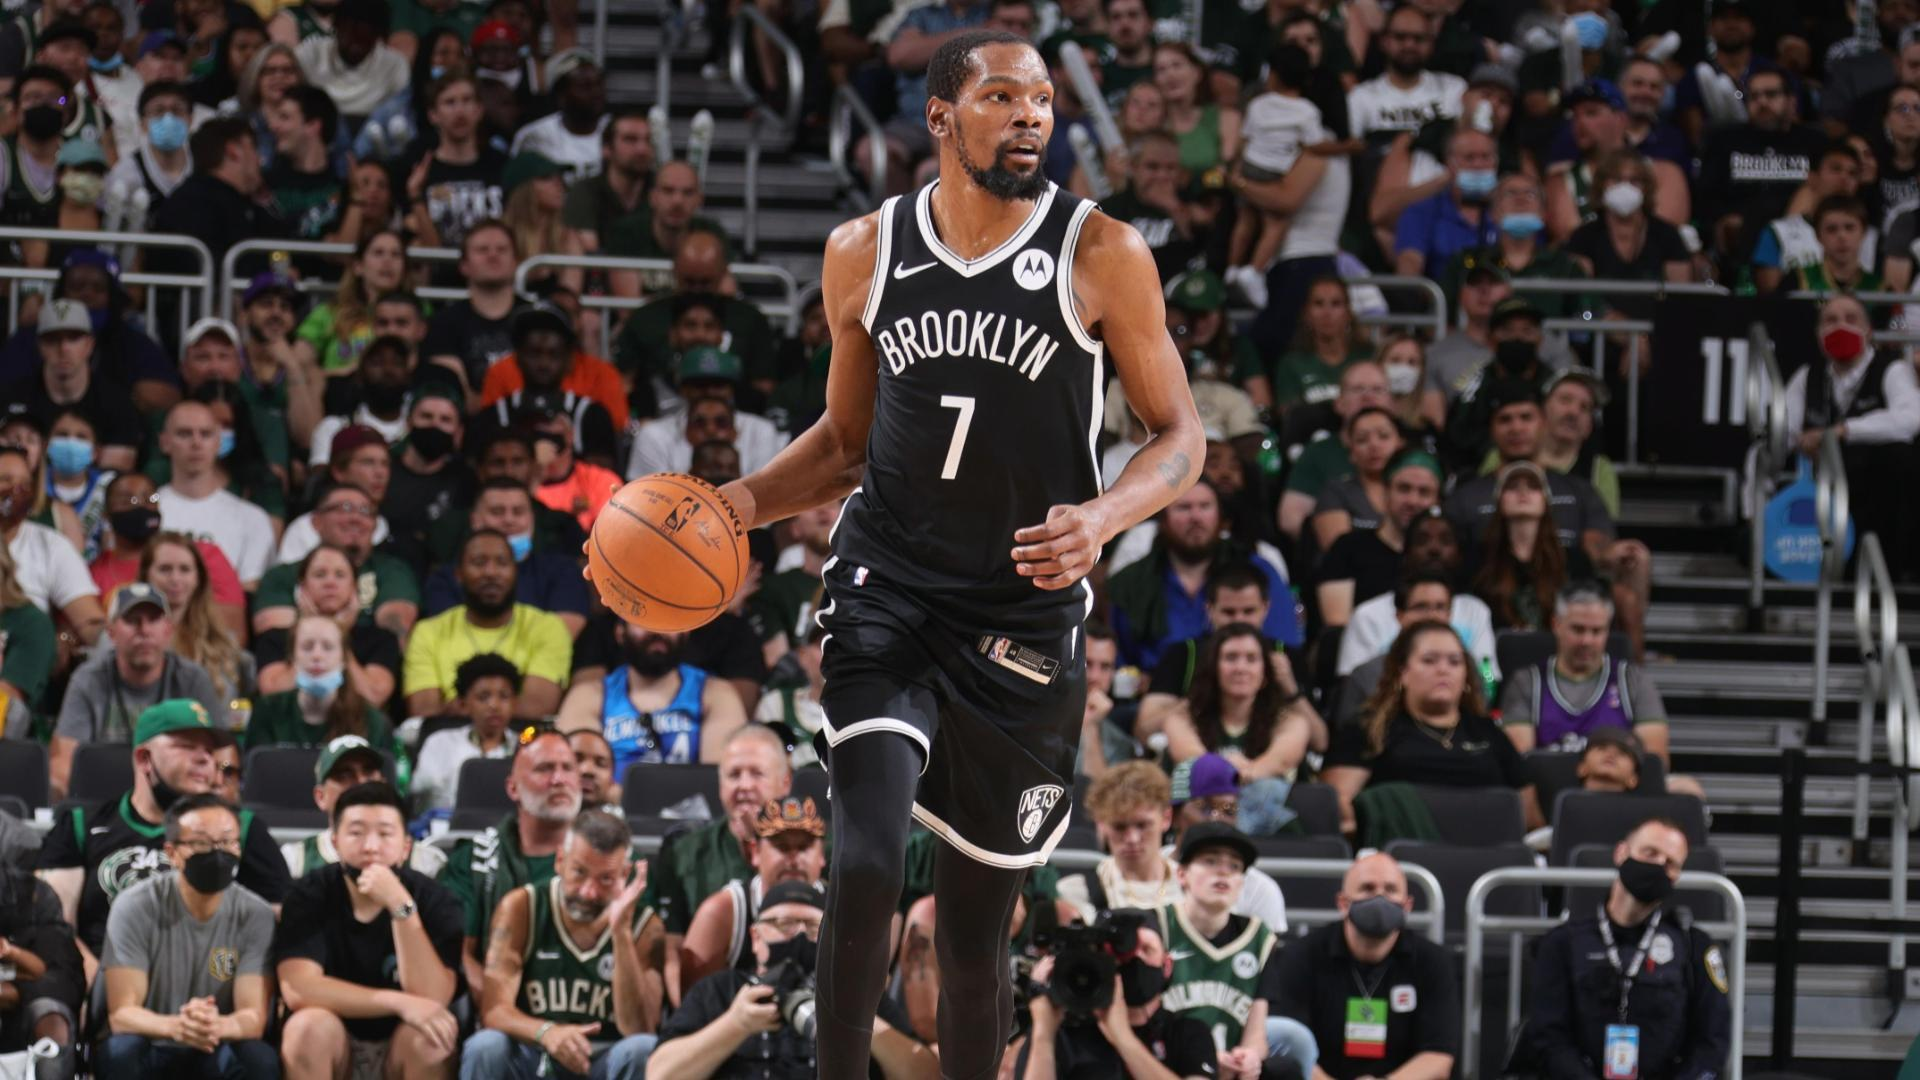 Can Durant lead Nets to win vs. Bucks without Irving or Harden?